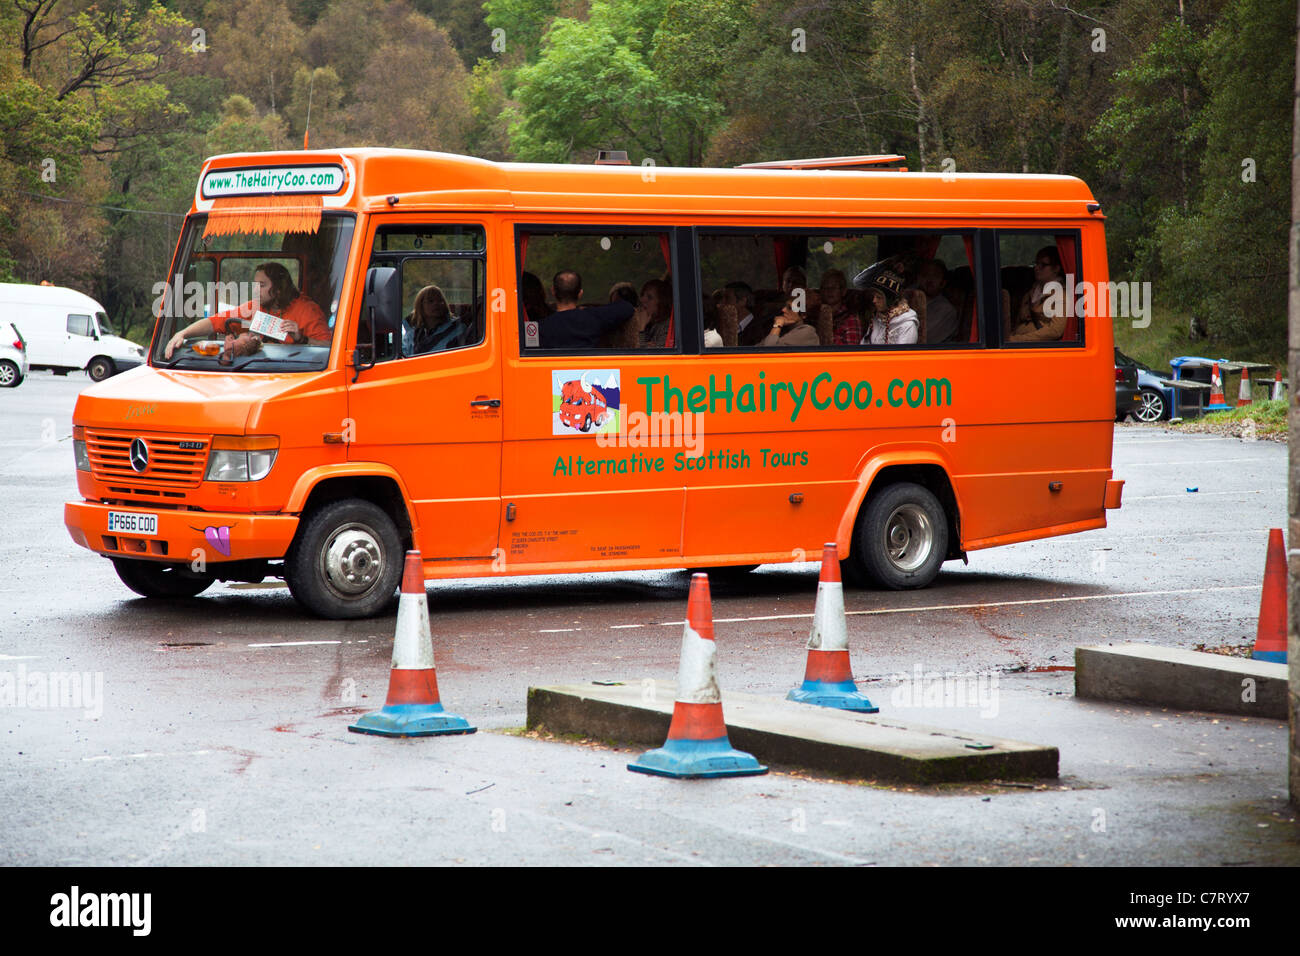 The hairy coo .com tour bus at a parking spot Loch Katrine Scotland, Scottish holiday travel alternative - Stock Image